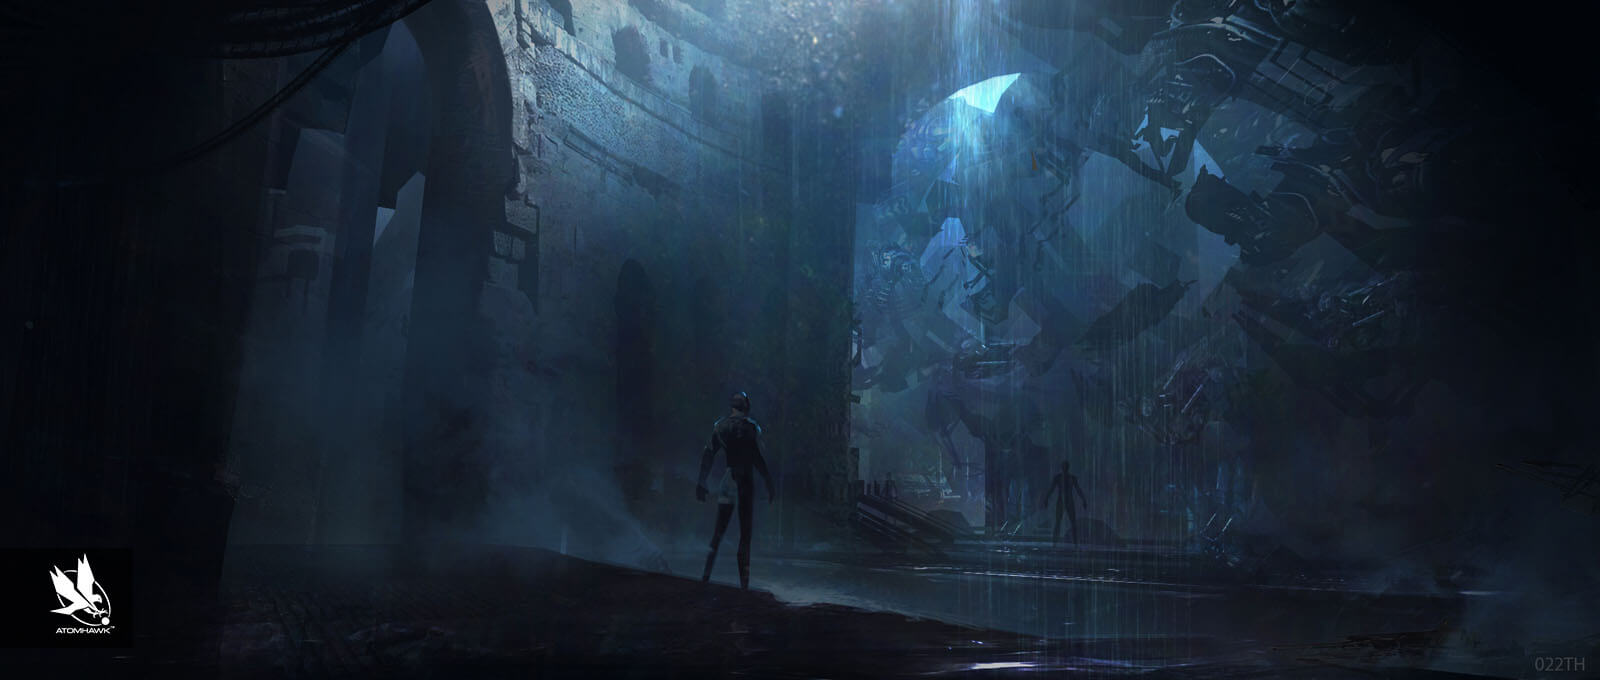 Avengers Age Of Ultron Project - Concept Art and Environment Design - Fortress Factory Level 6